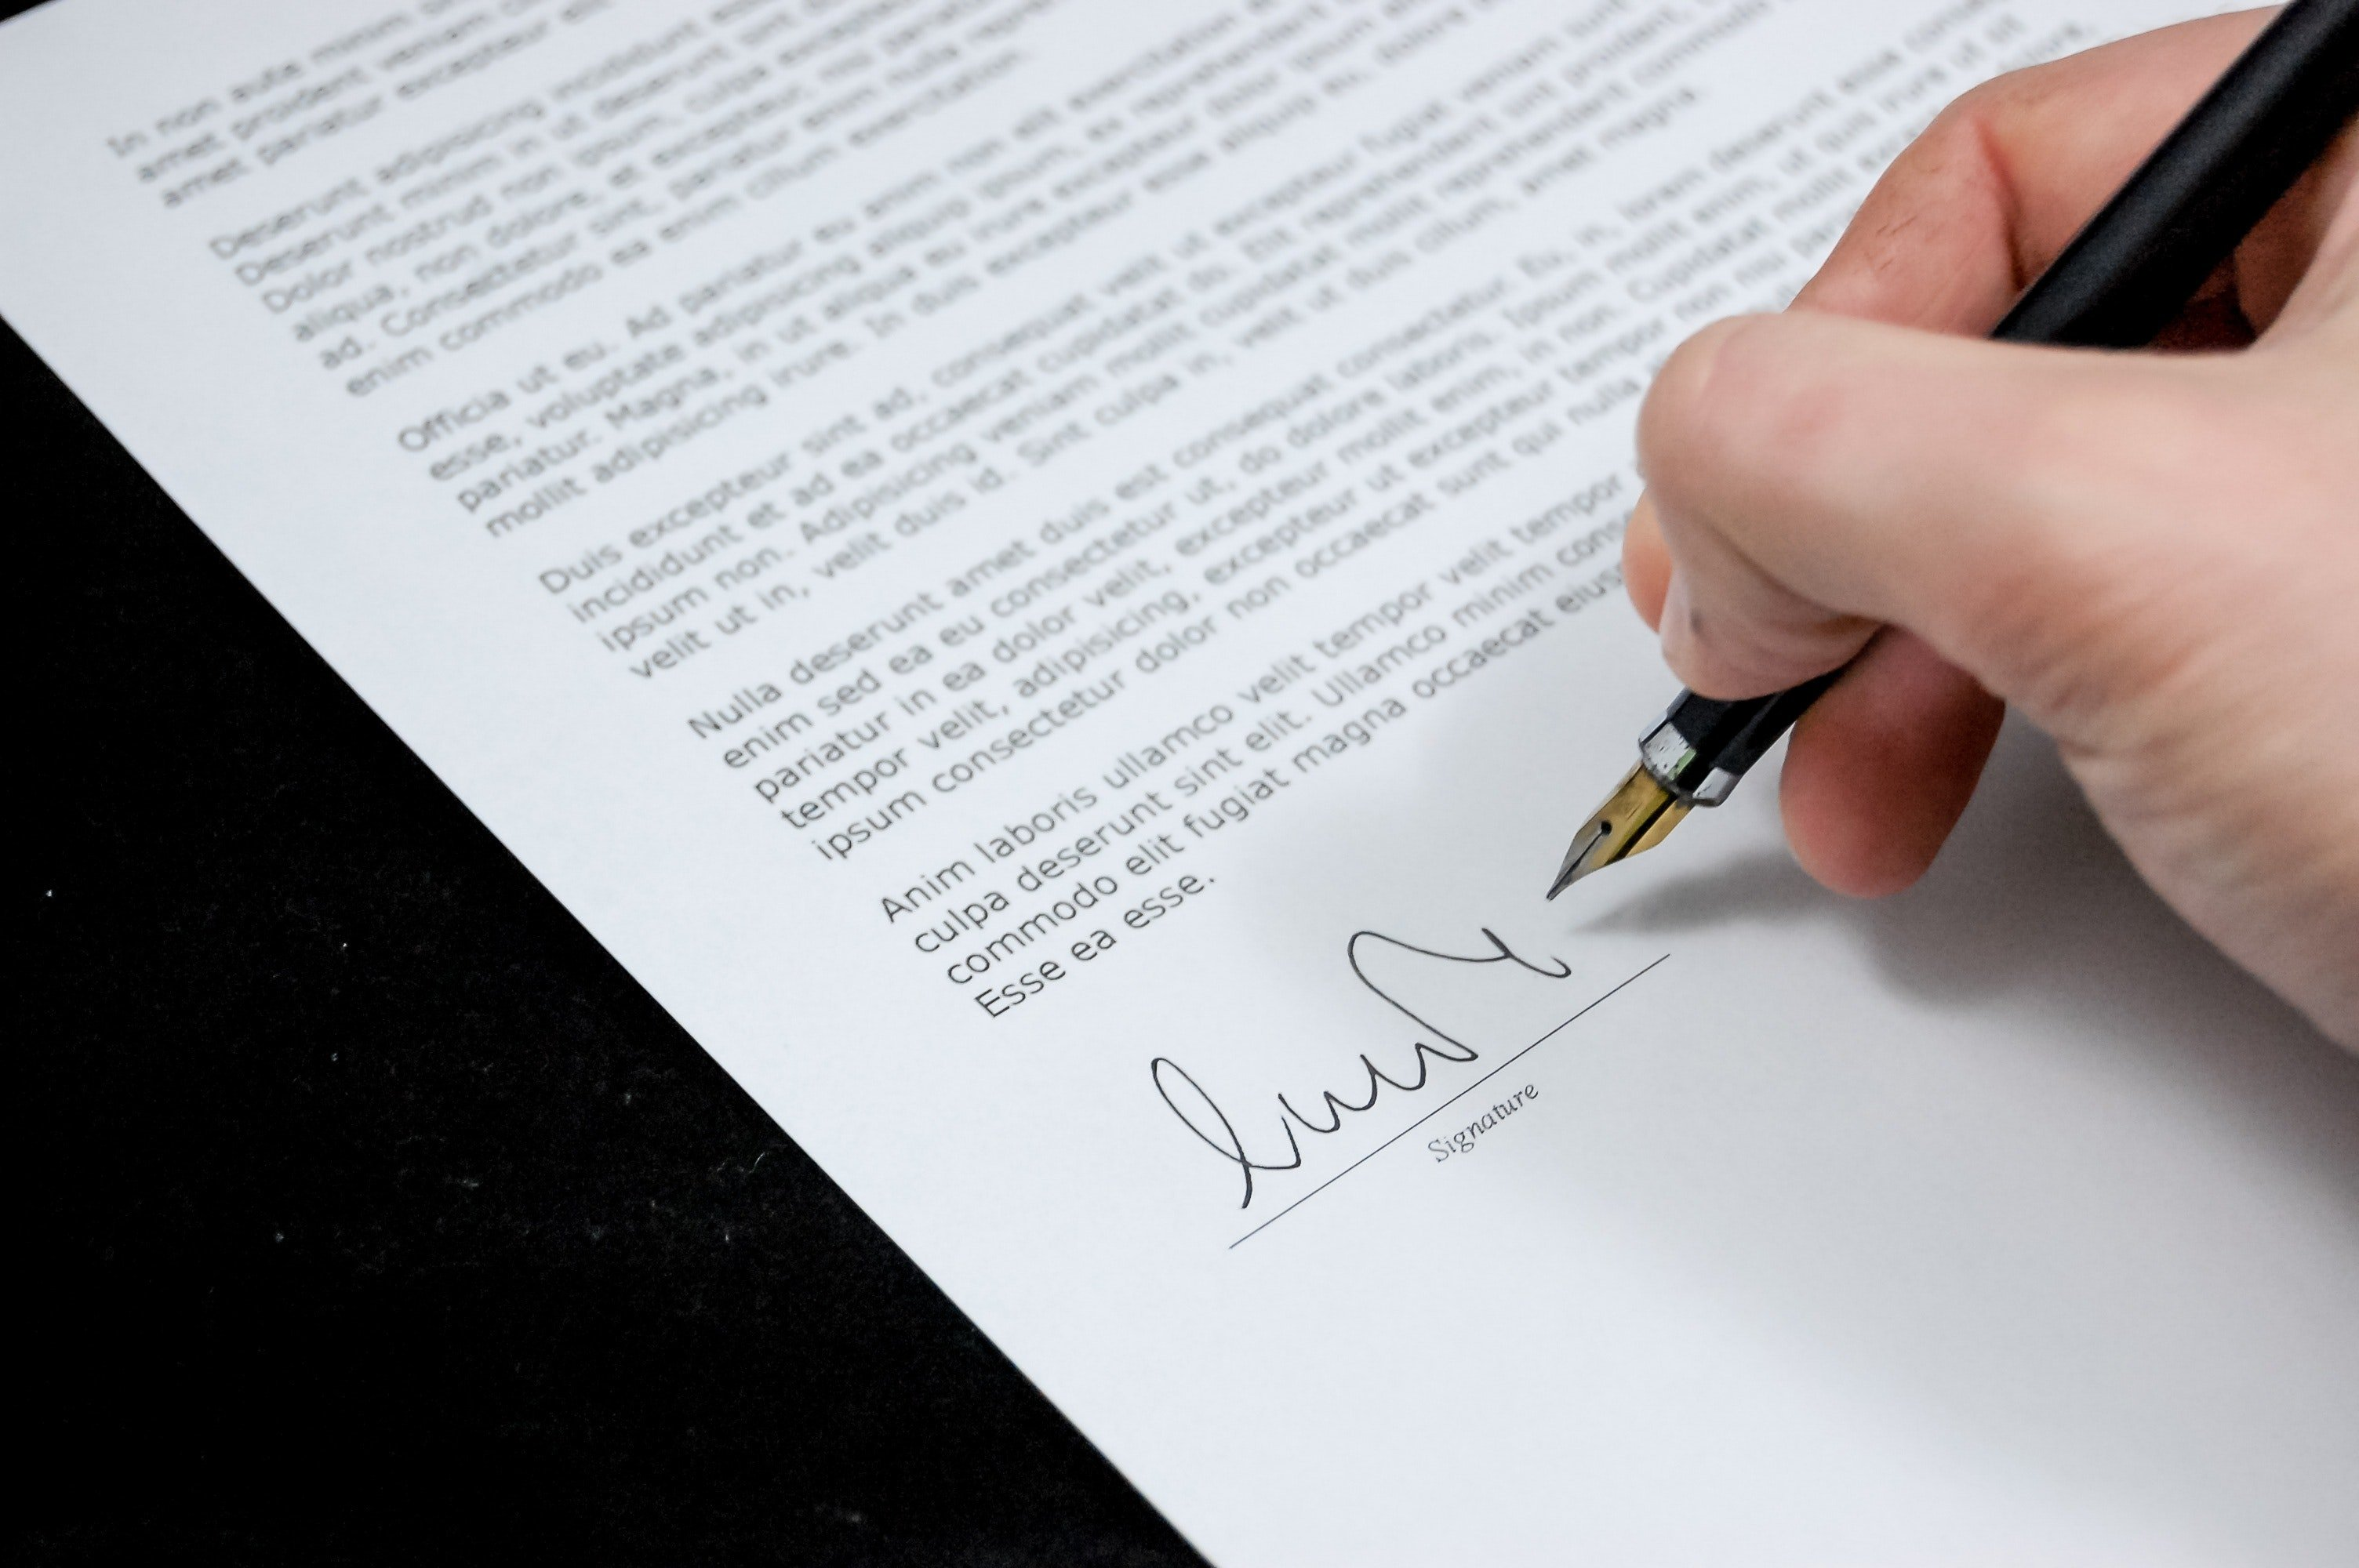 A signed document | Source: Pexels